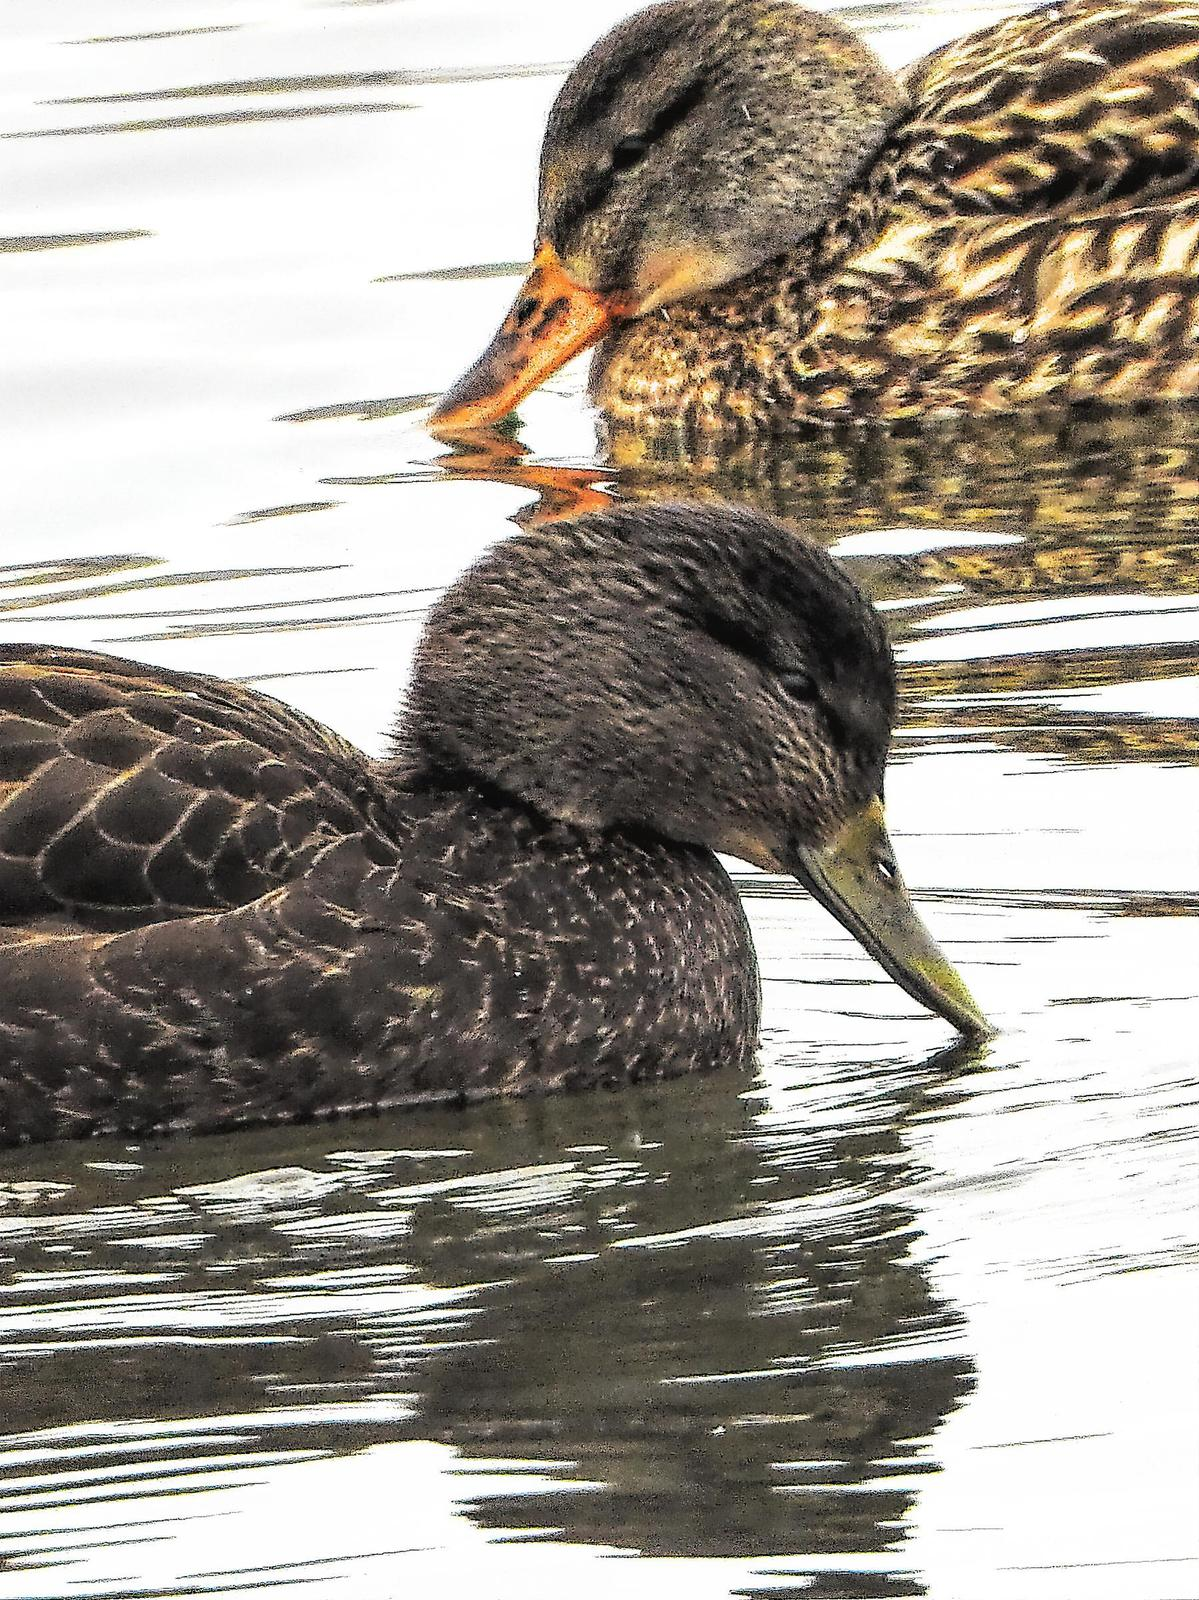 American Black Duck Photo by Dan Tallman